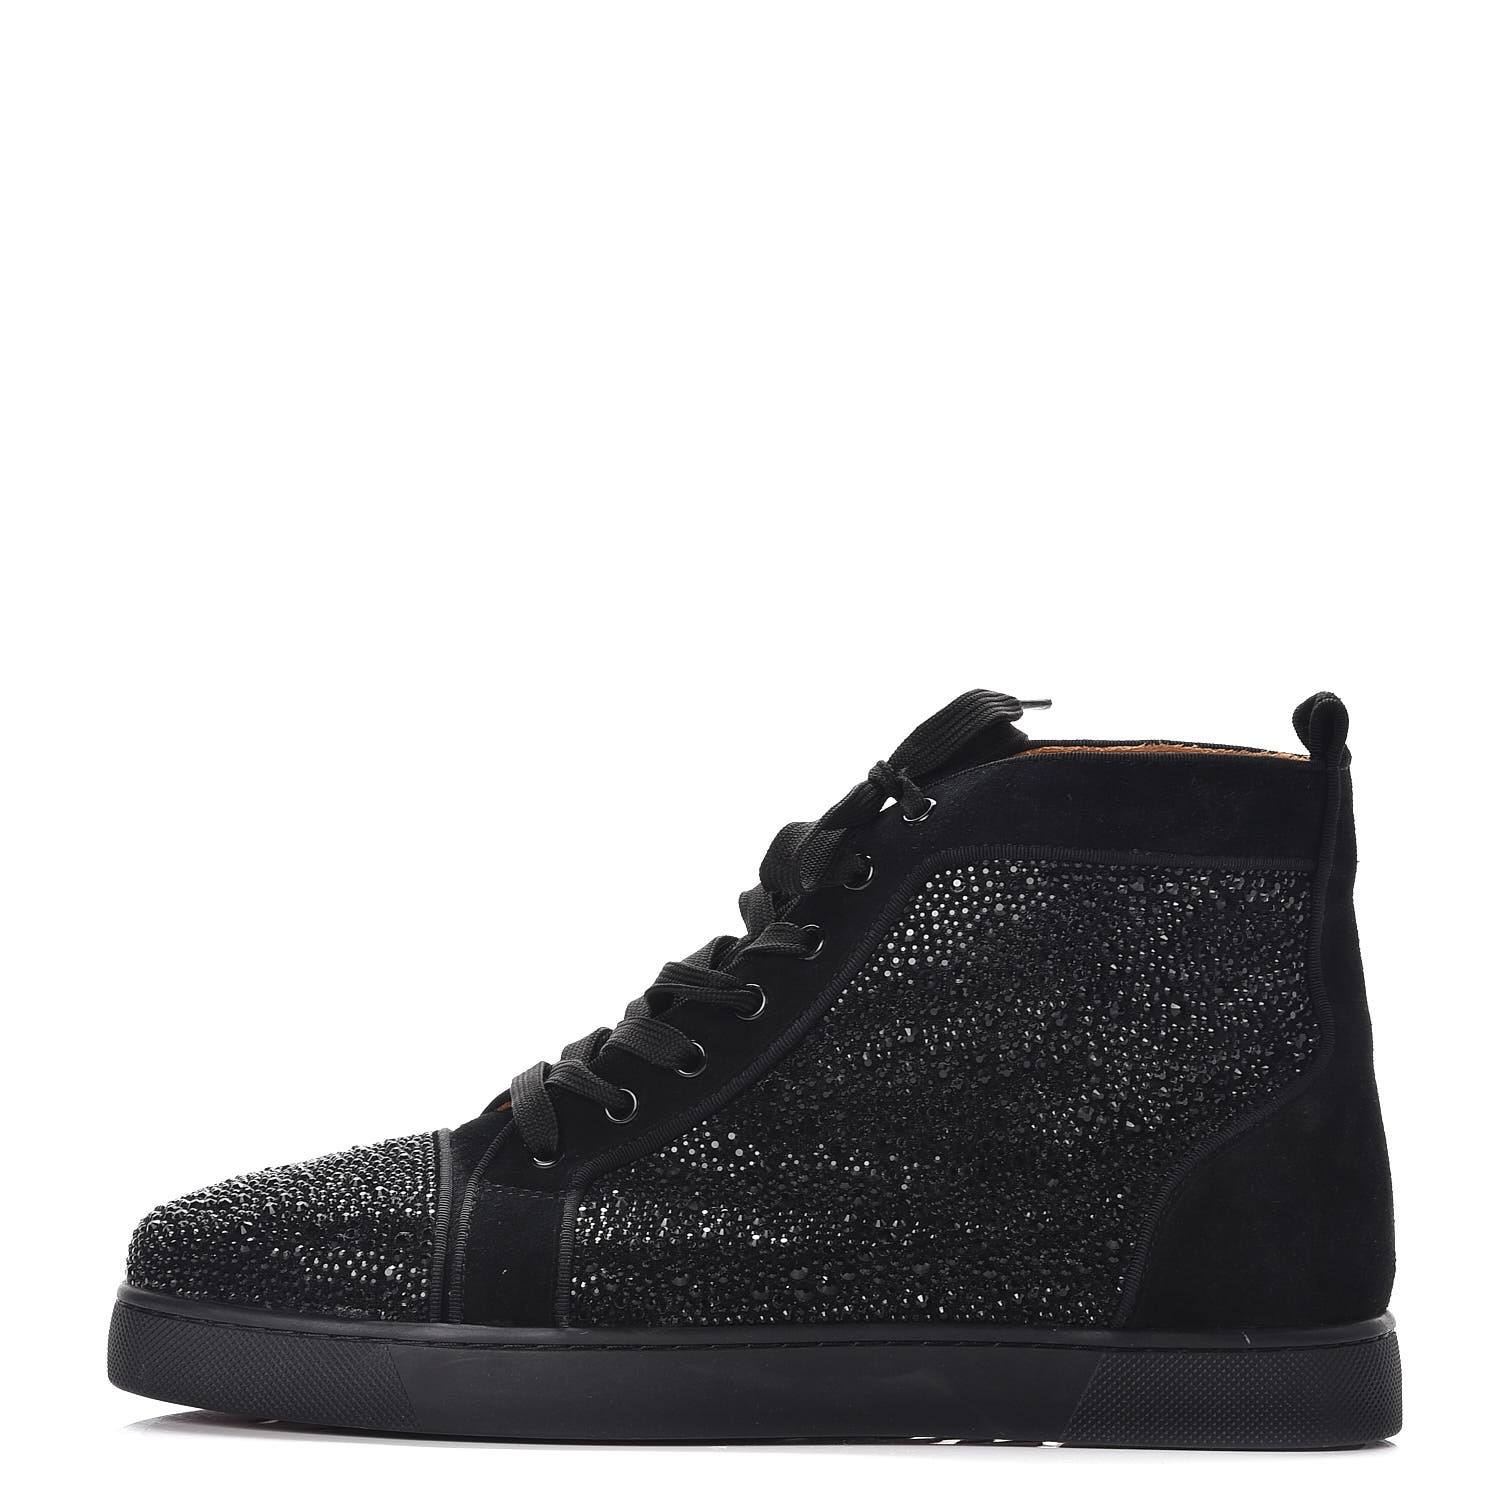 CHRISTIAN LOUBOUTIN Mens Veau Velours Strass Louis Flat